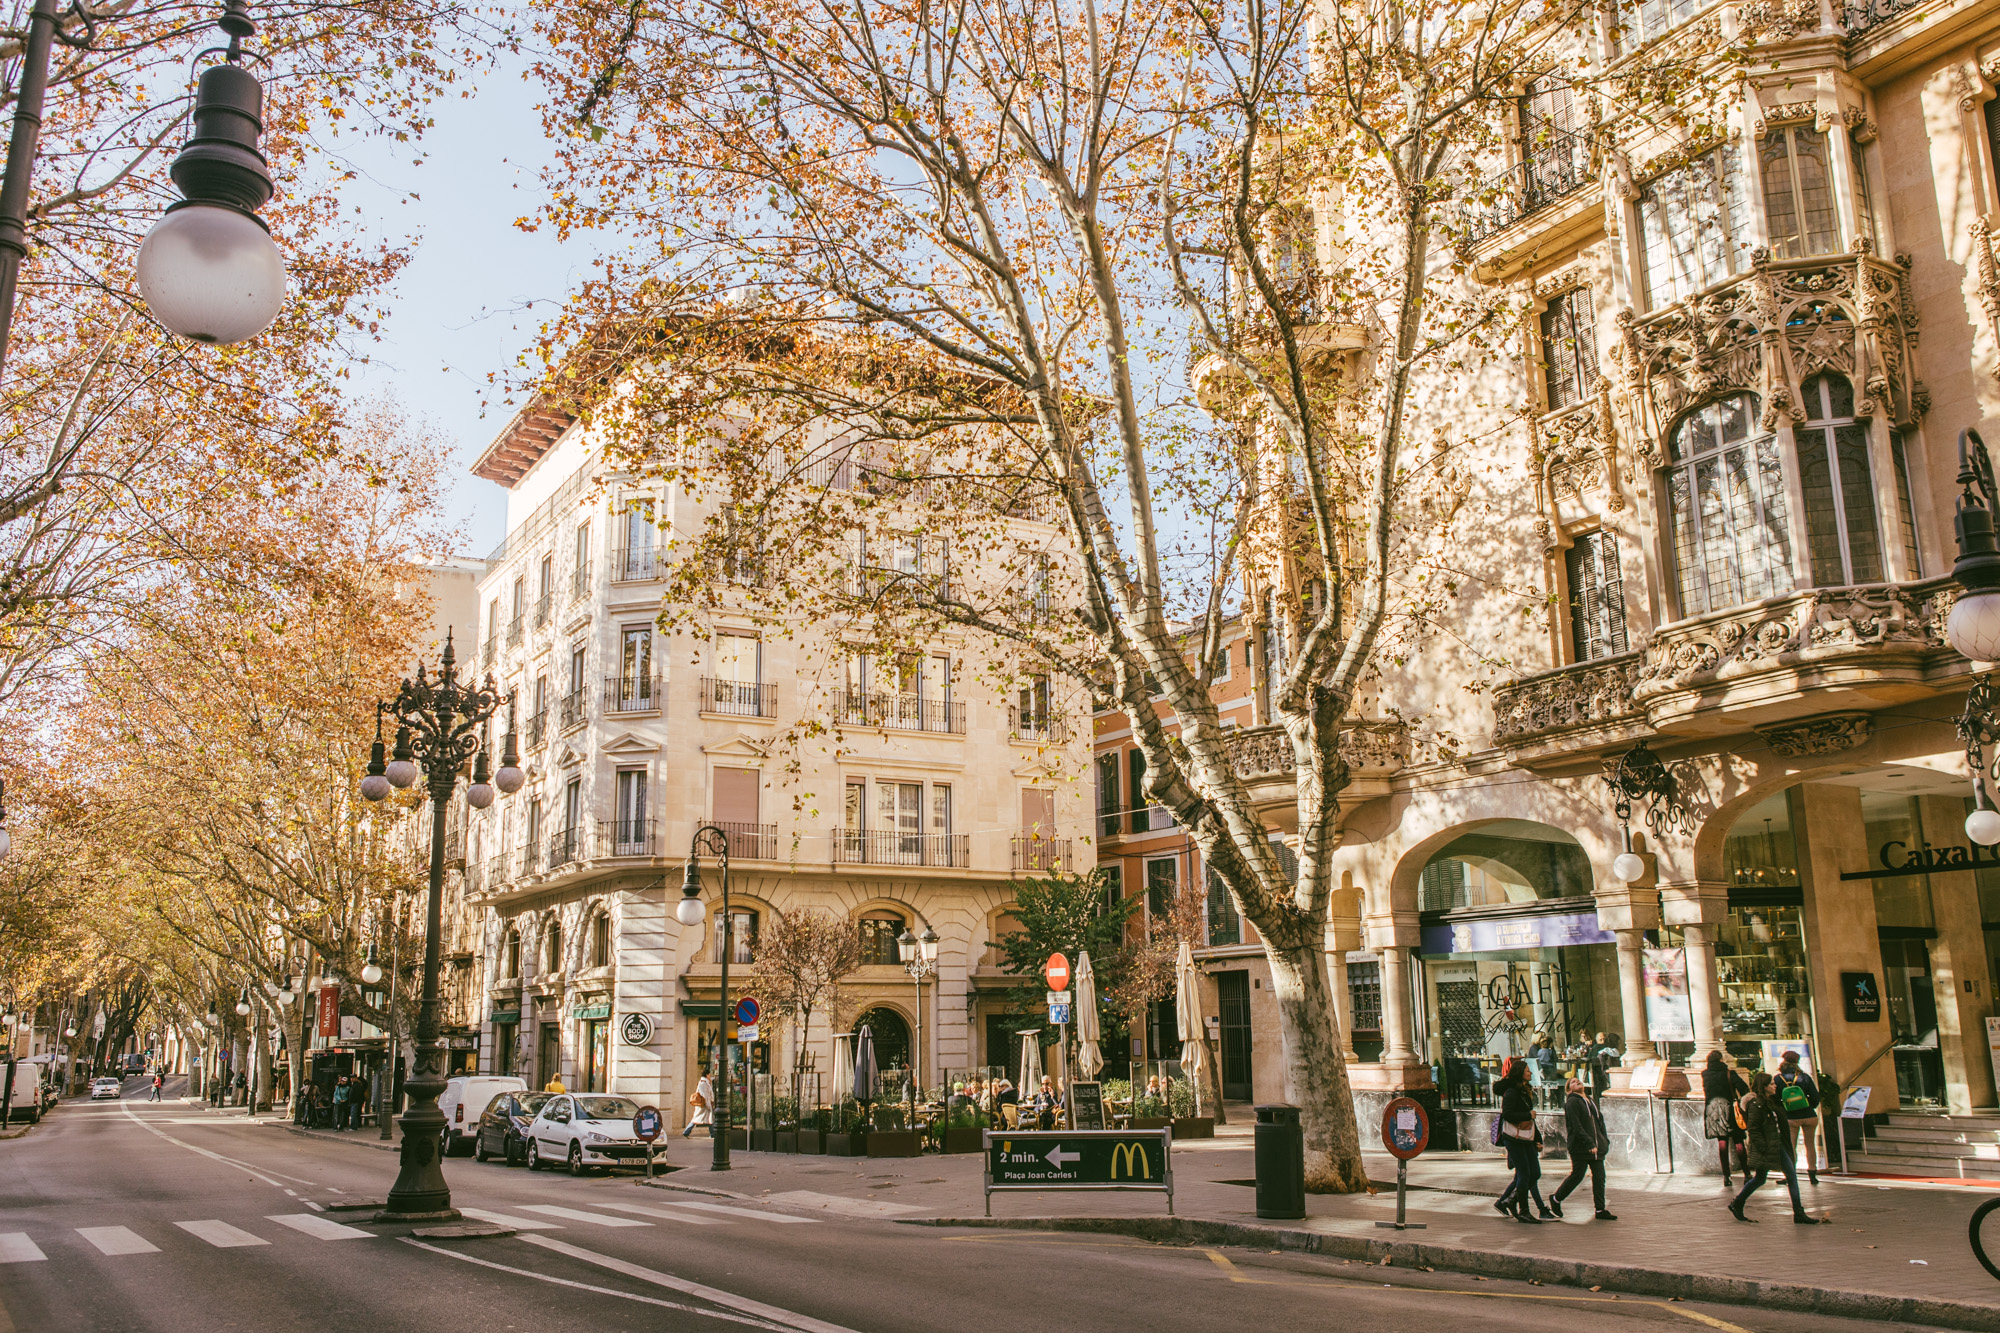 The outer edges of the Palma Square boasts many great little restaurants and cafes.